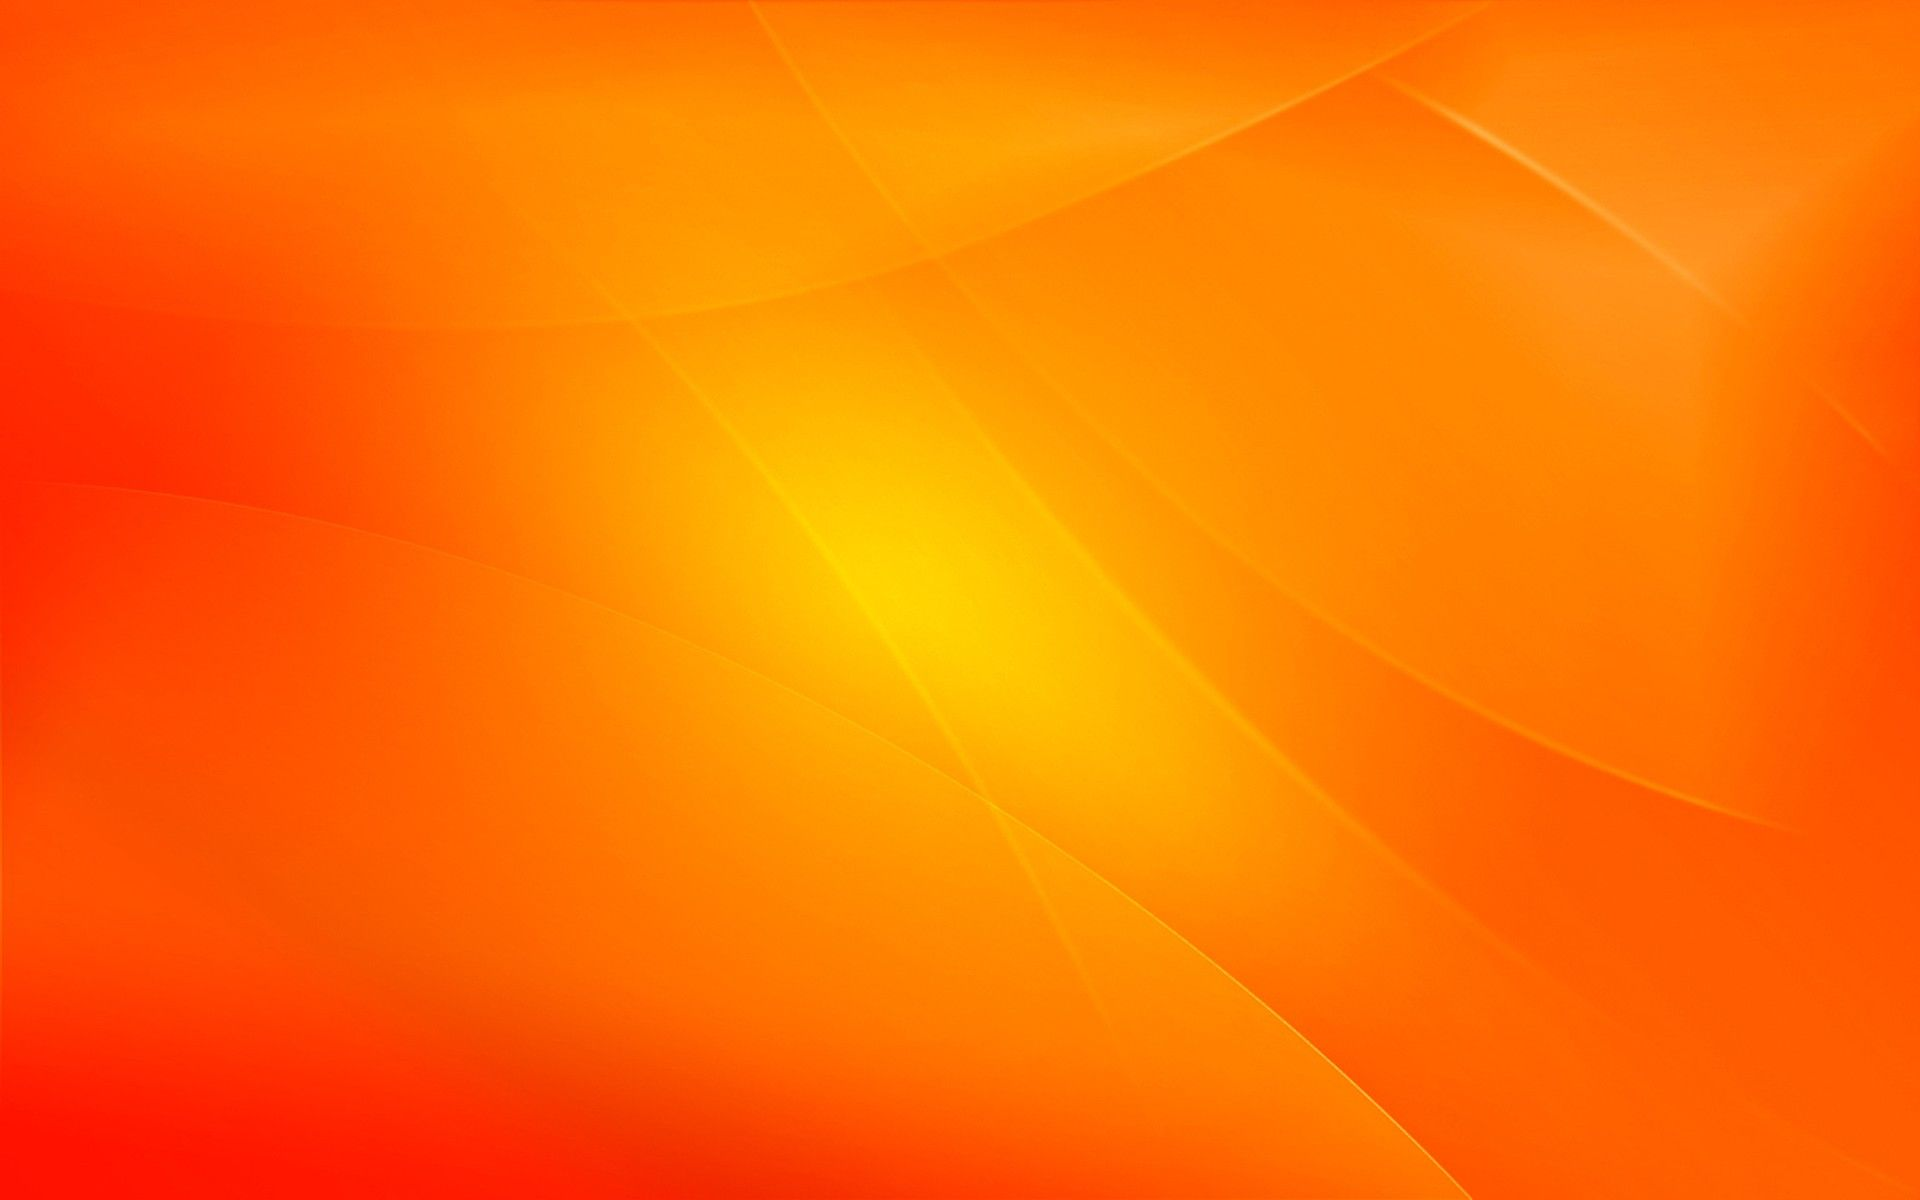 Abstract Colour Background Orange Wallpaper Your HD Wallpaper 1920 1920x1200